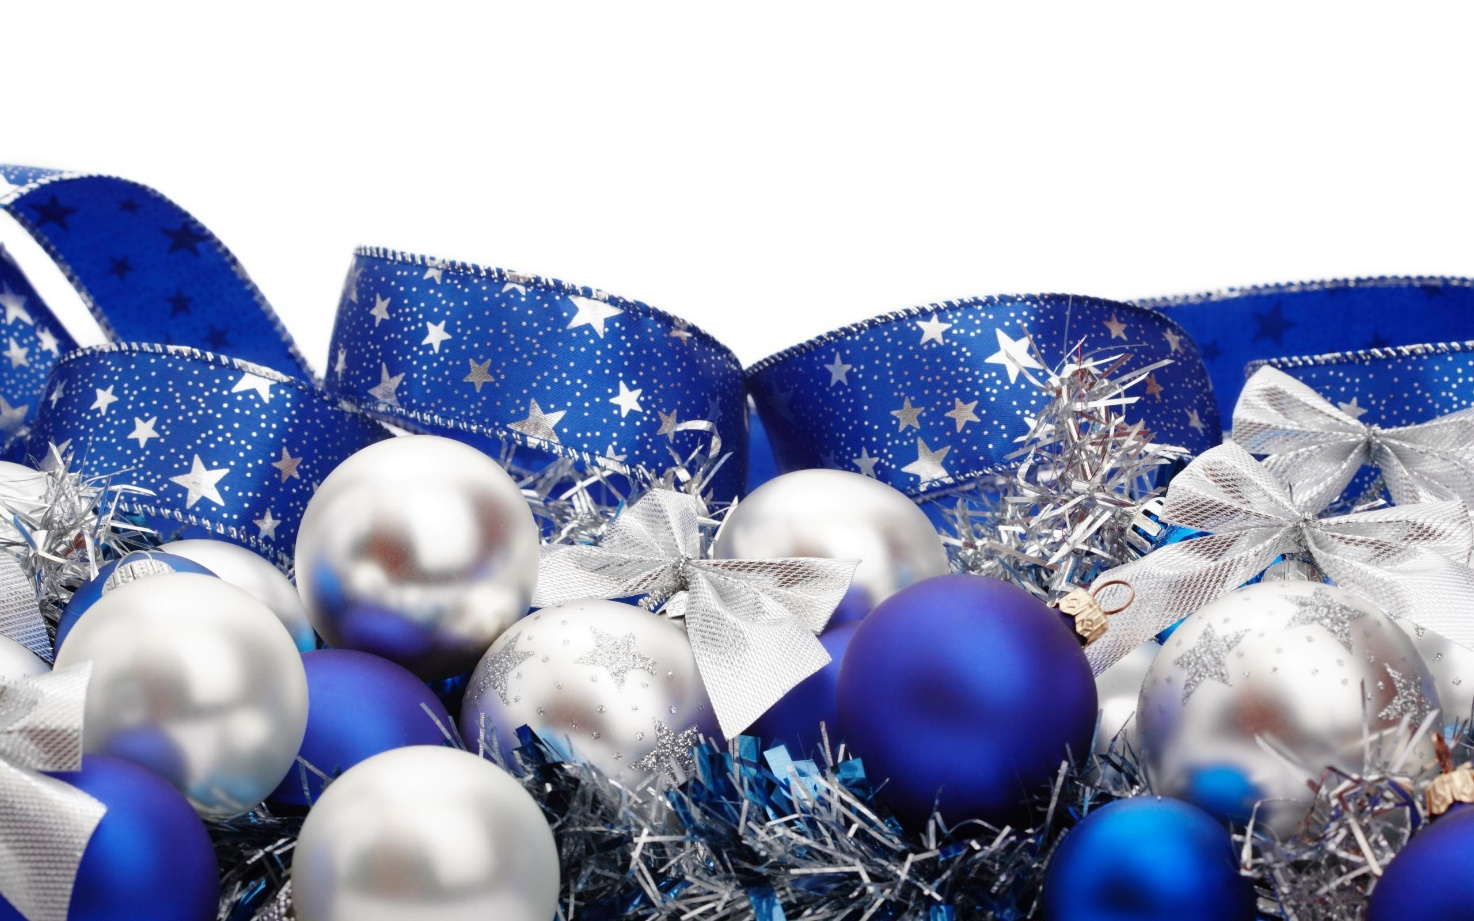 White/silver and blue Christmas decorations